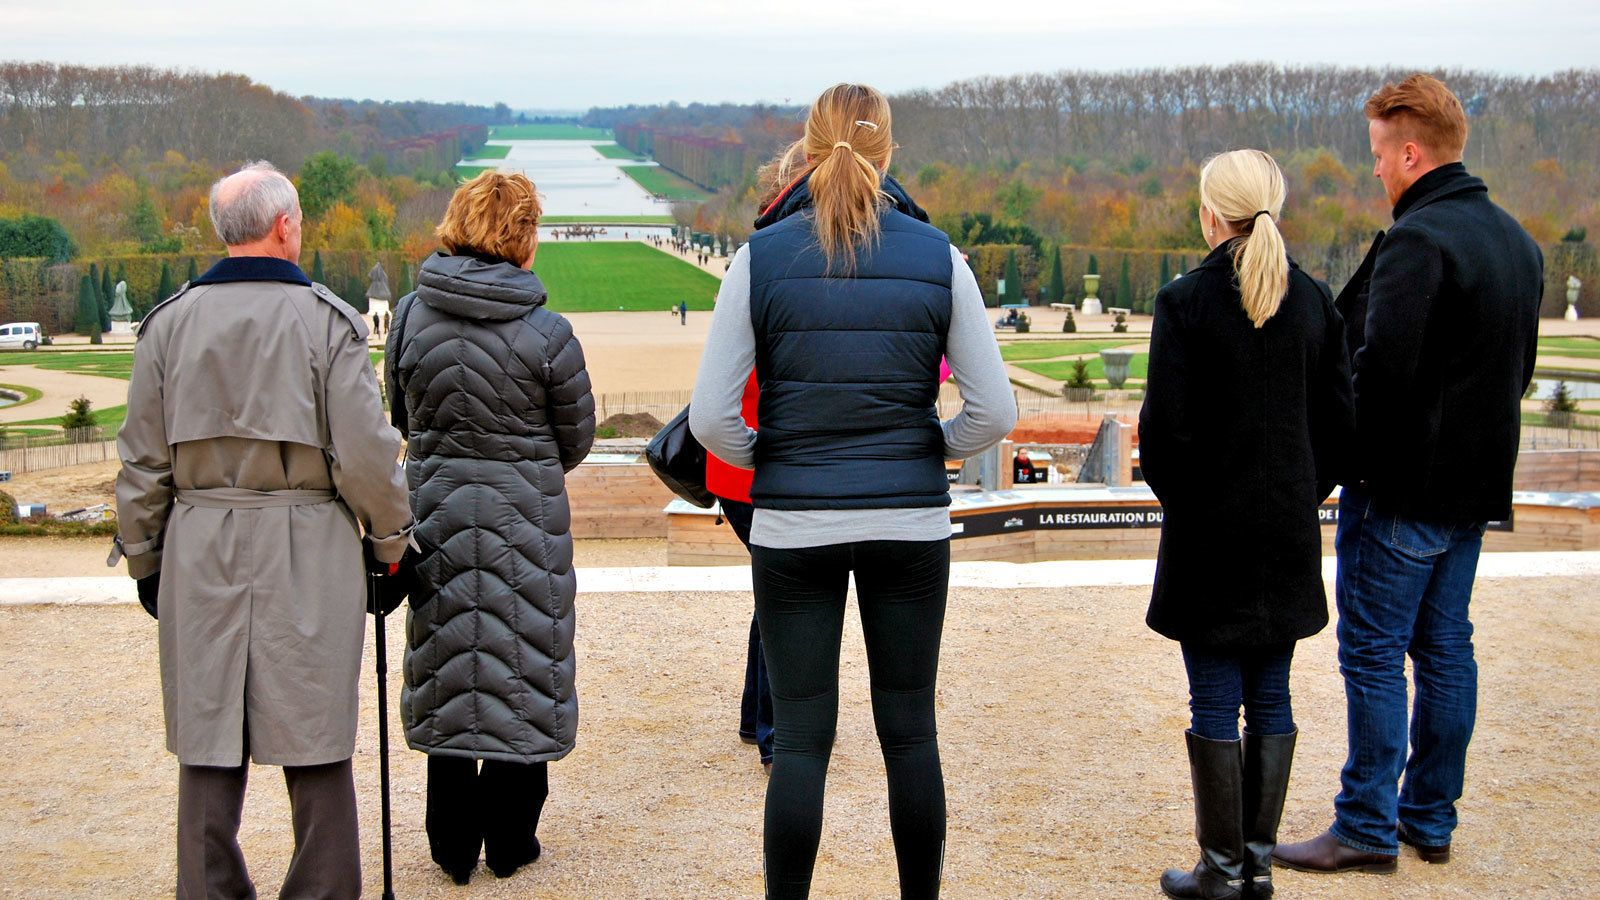 overlooking the extensive garden at the Versailles Palace in France